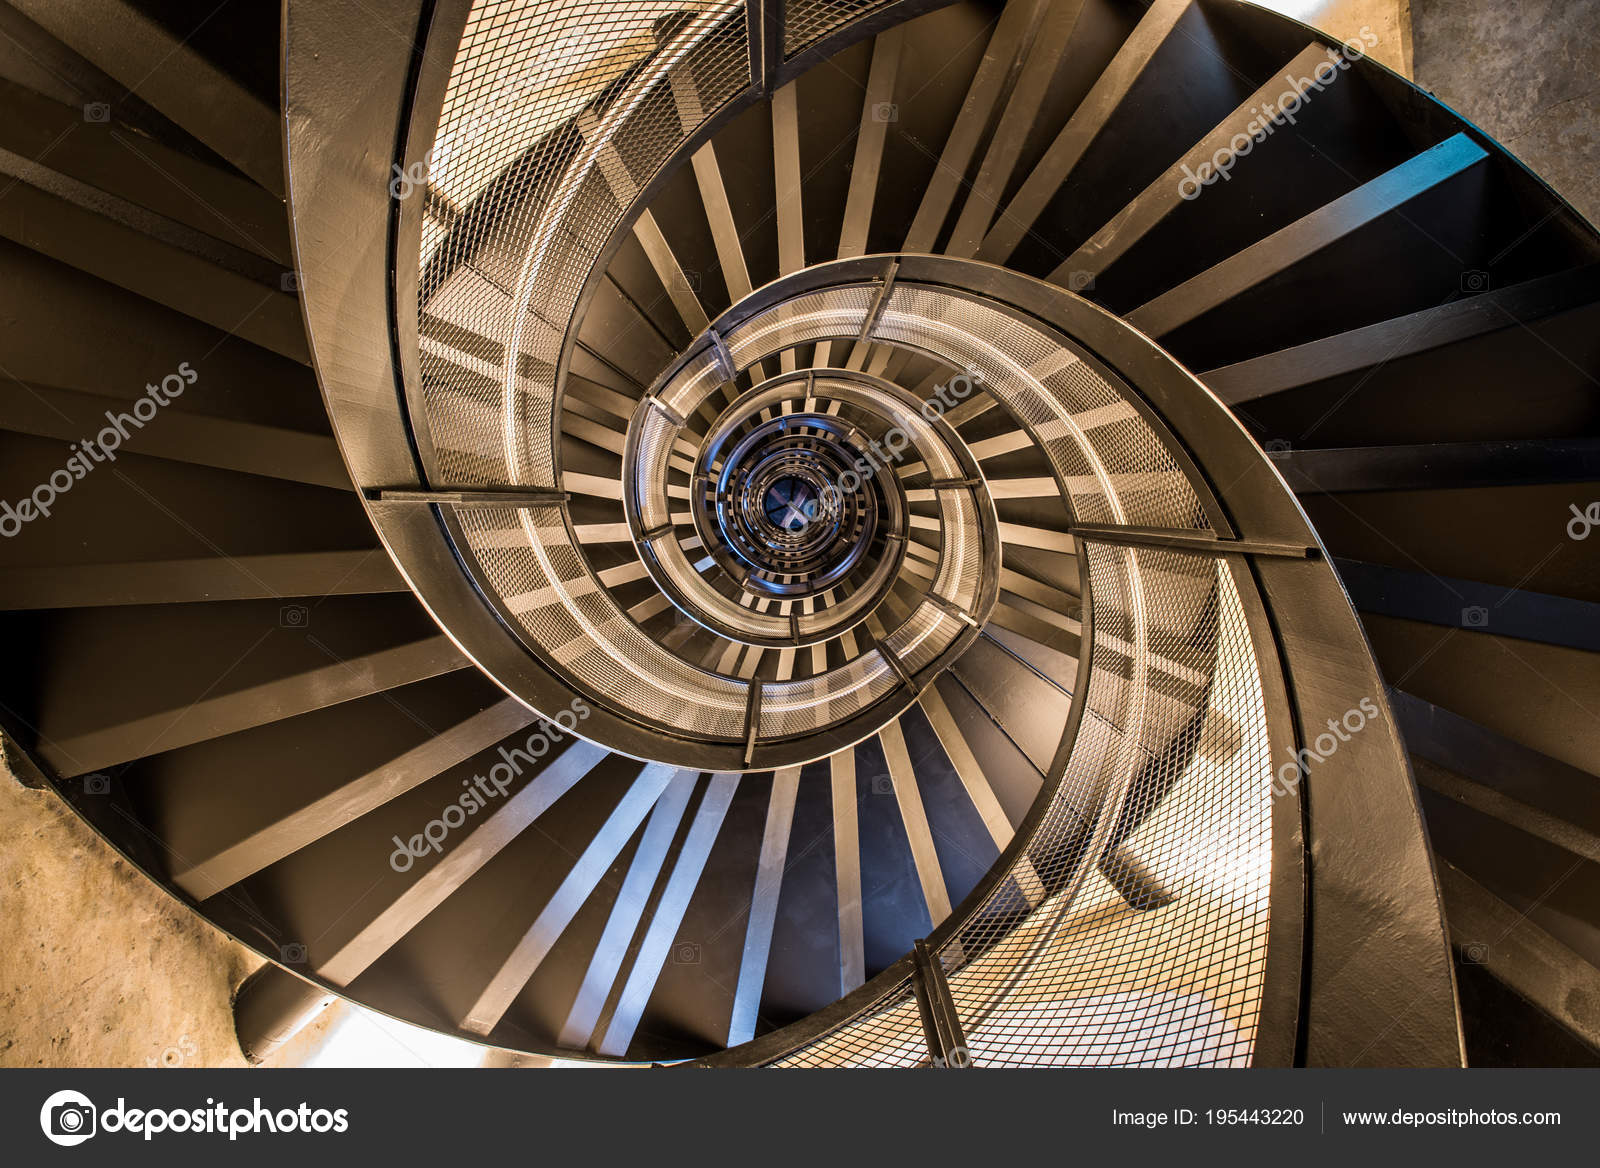 Spiral Staircase Tower Interior Architecture Building U2014 Stock Photo